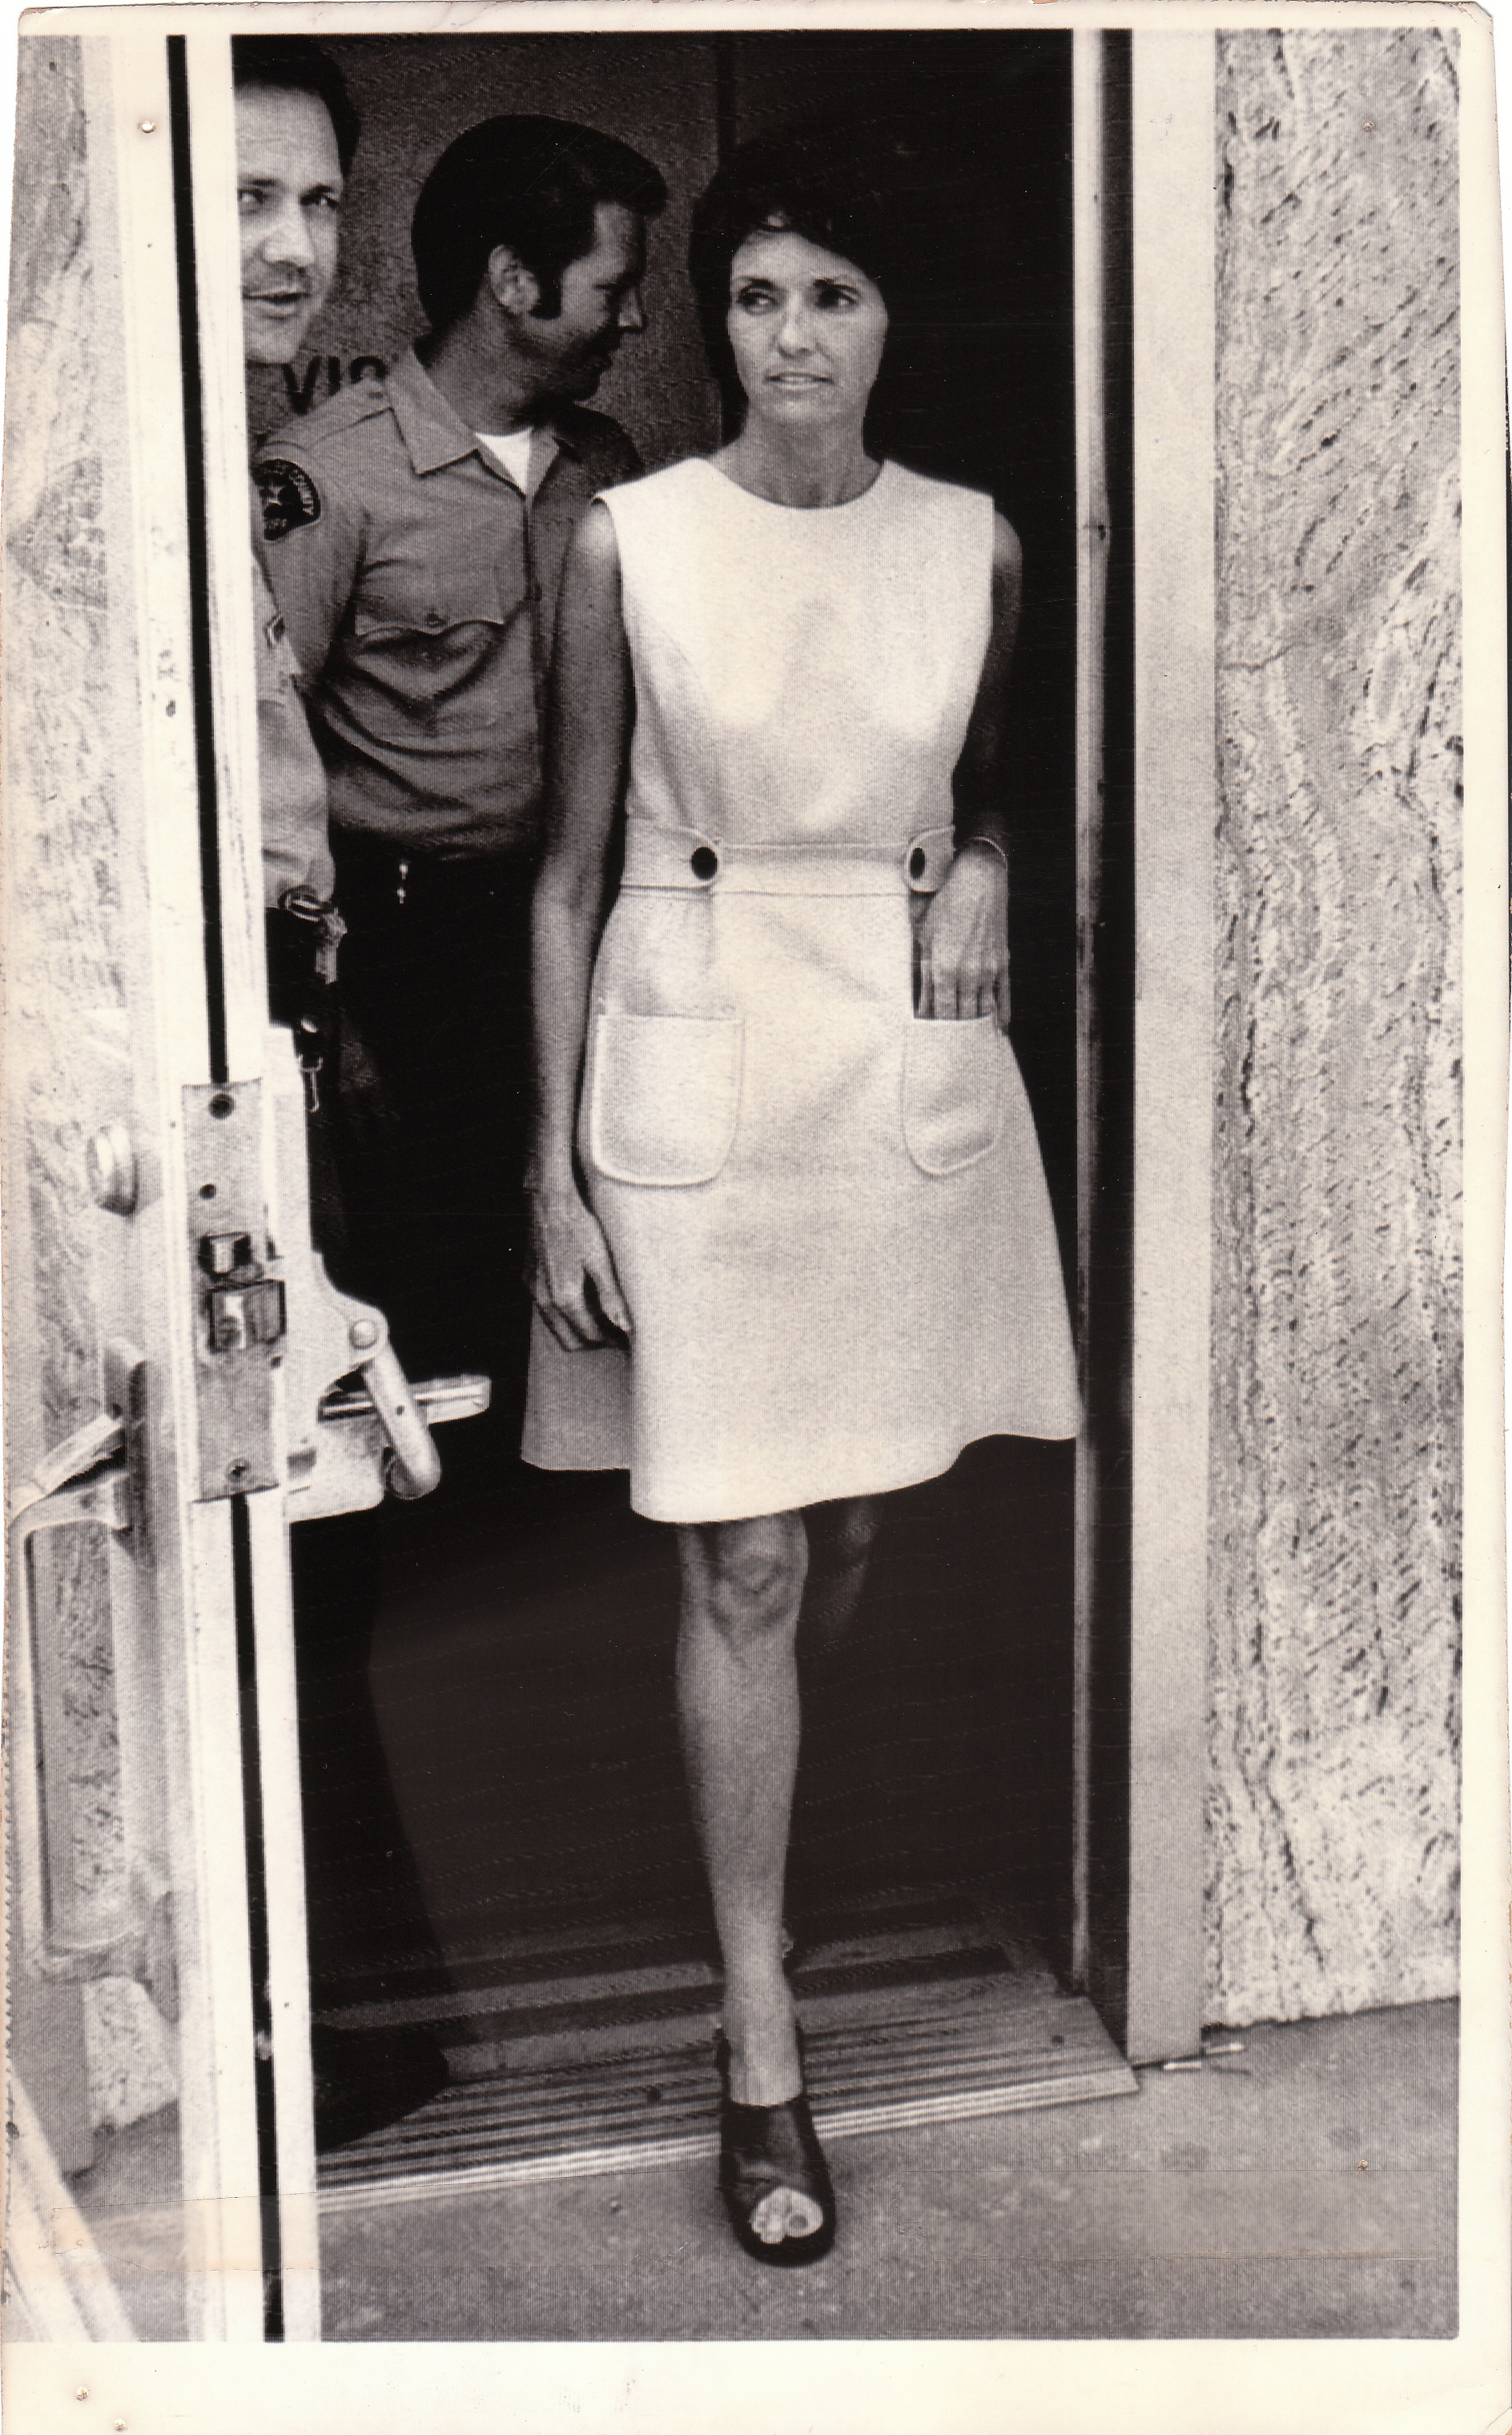 "July 10, 1973: Van Nuys, California, Lucille Miller, 43, paroled a year ago after serving seven years in prison for the slaying of her dentist and husband, is seen leaving municipal court on Monday after her arraignment on a charge of shoplifting a $7 blouse. If convicted, Mrs. Miller faces a possible revocation of her parole and a return to prison, to serve more of the life term originally given on the murder charge.  Empire Makers_4, 2015, purchased press-release   photo  ,  10 x 6-1/4,""   all appropriation rights reserved ."